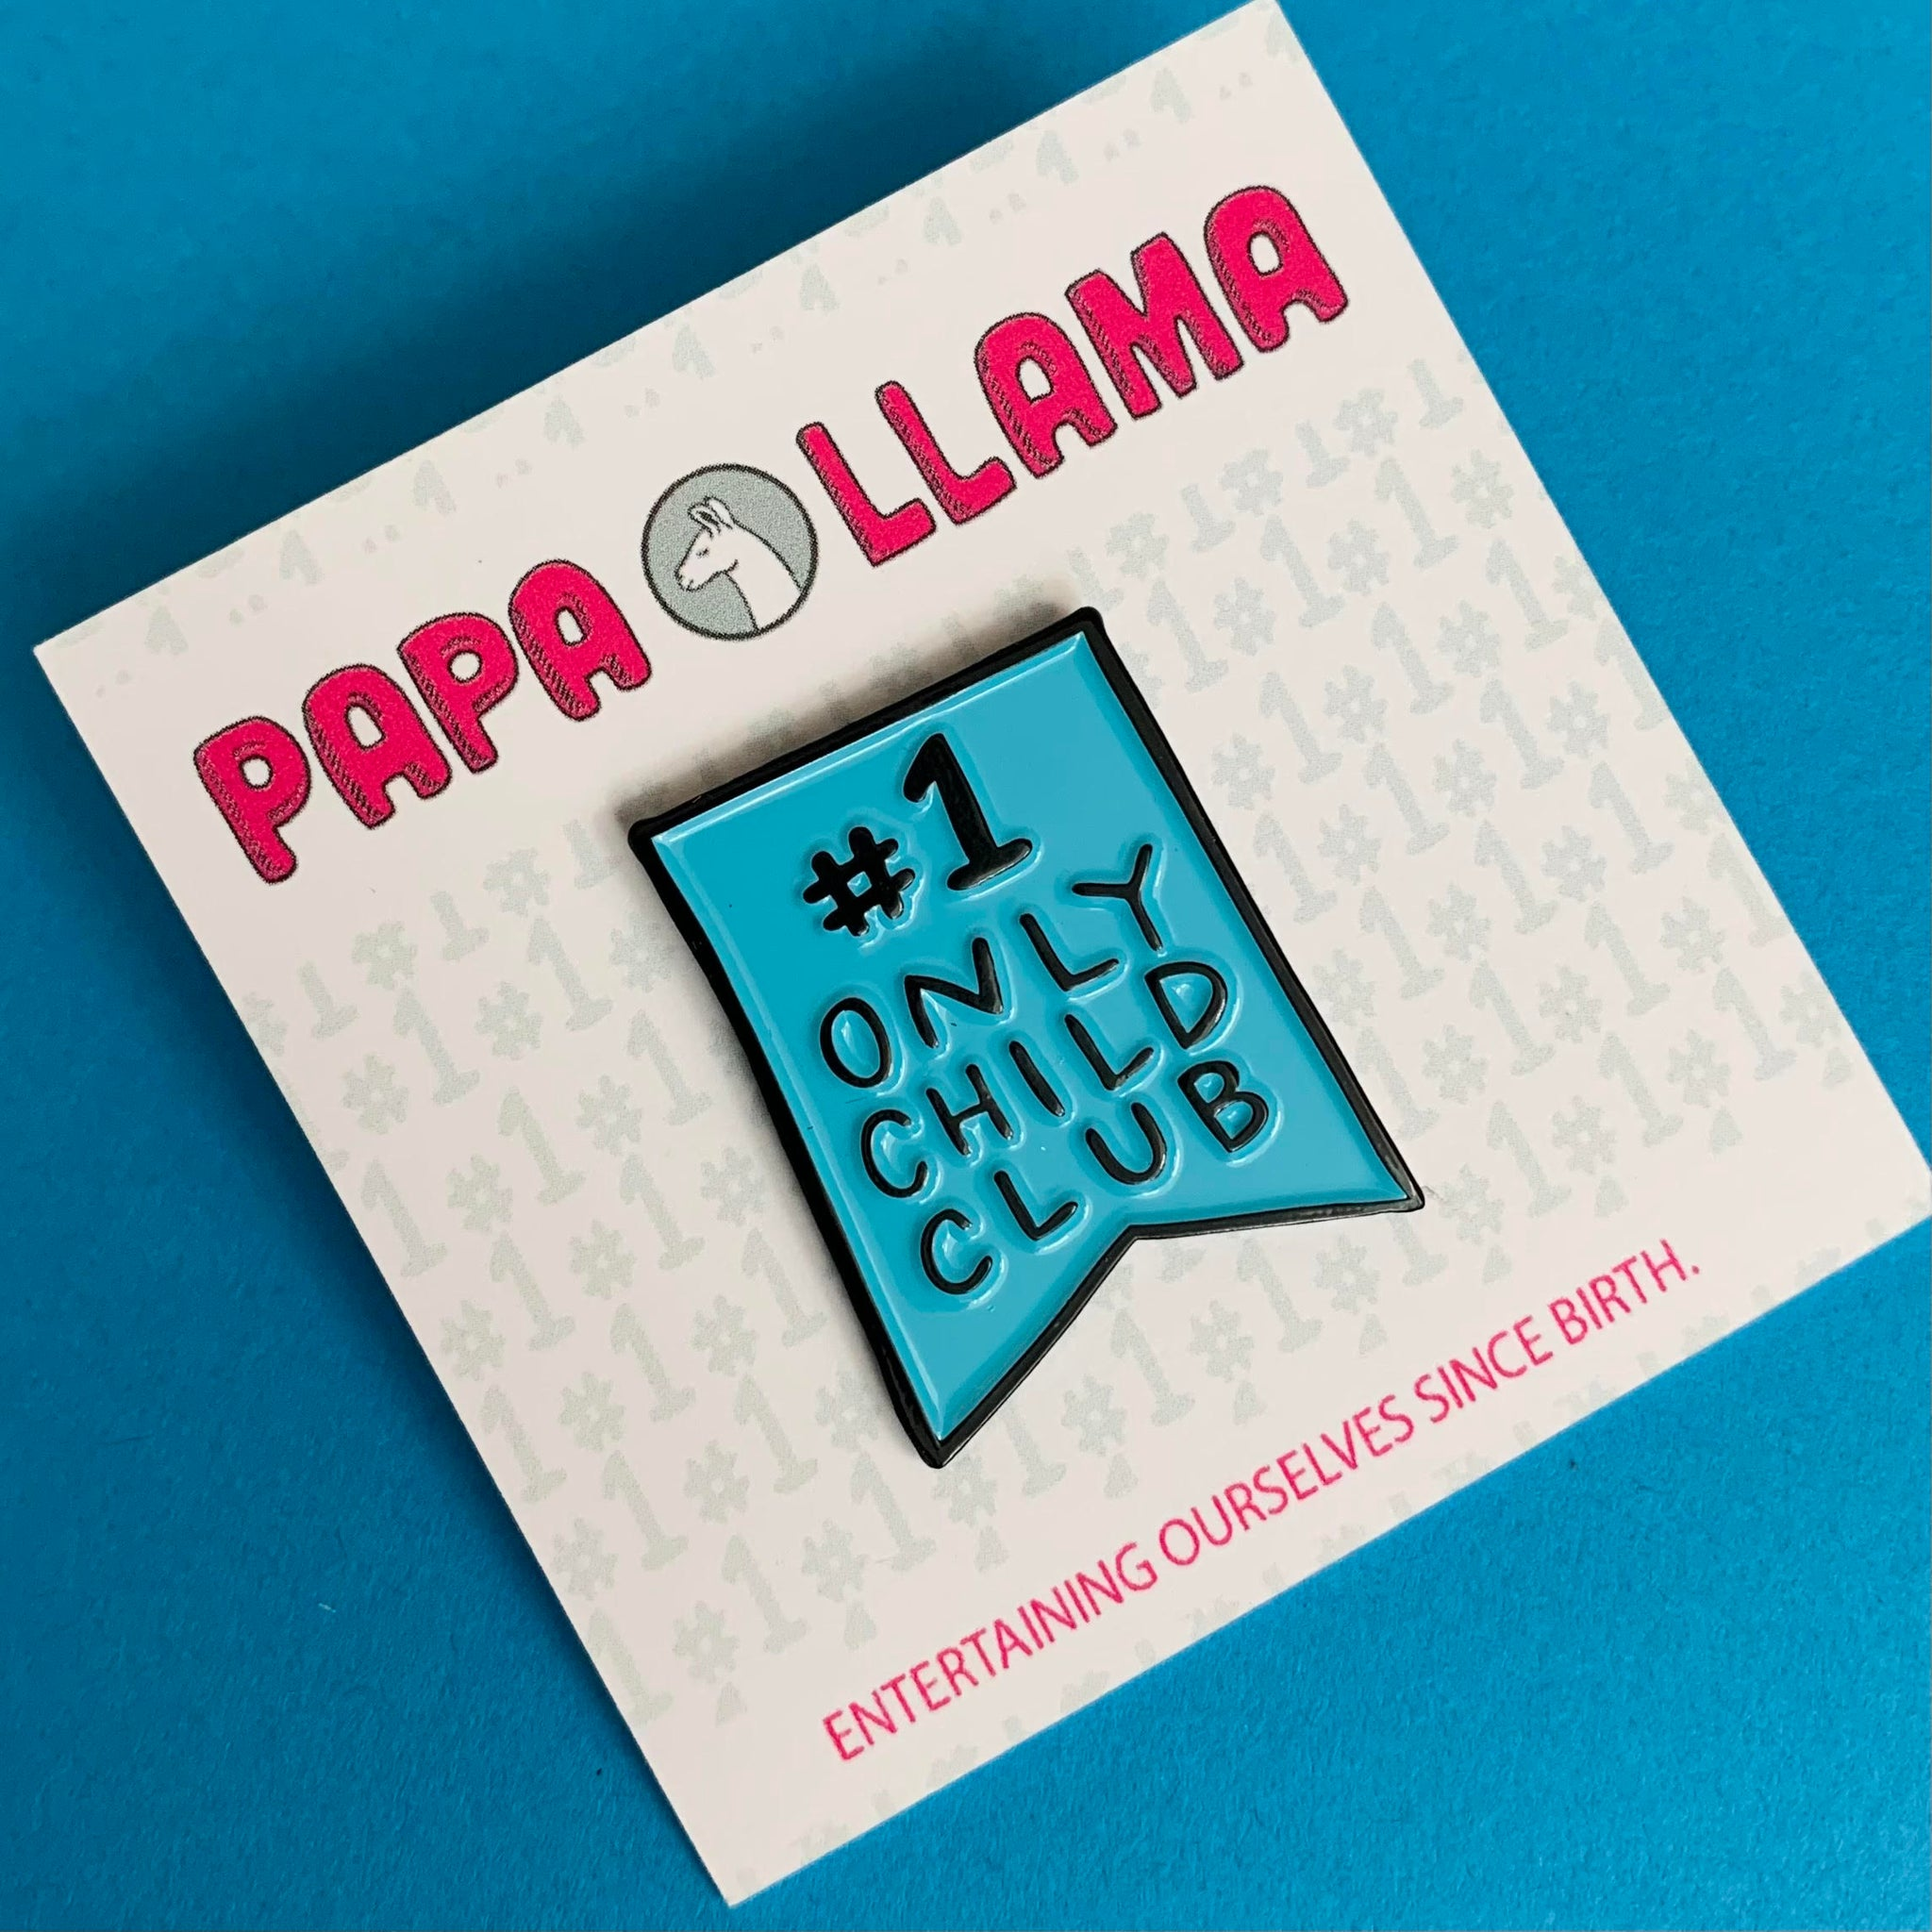 Only Child Club Enamel Pin